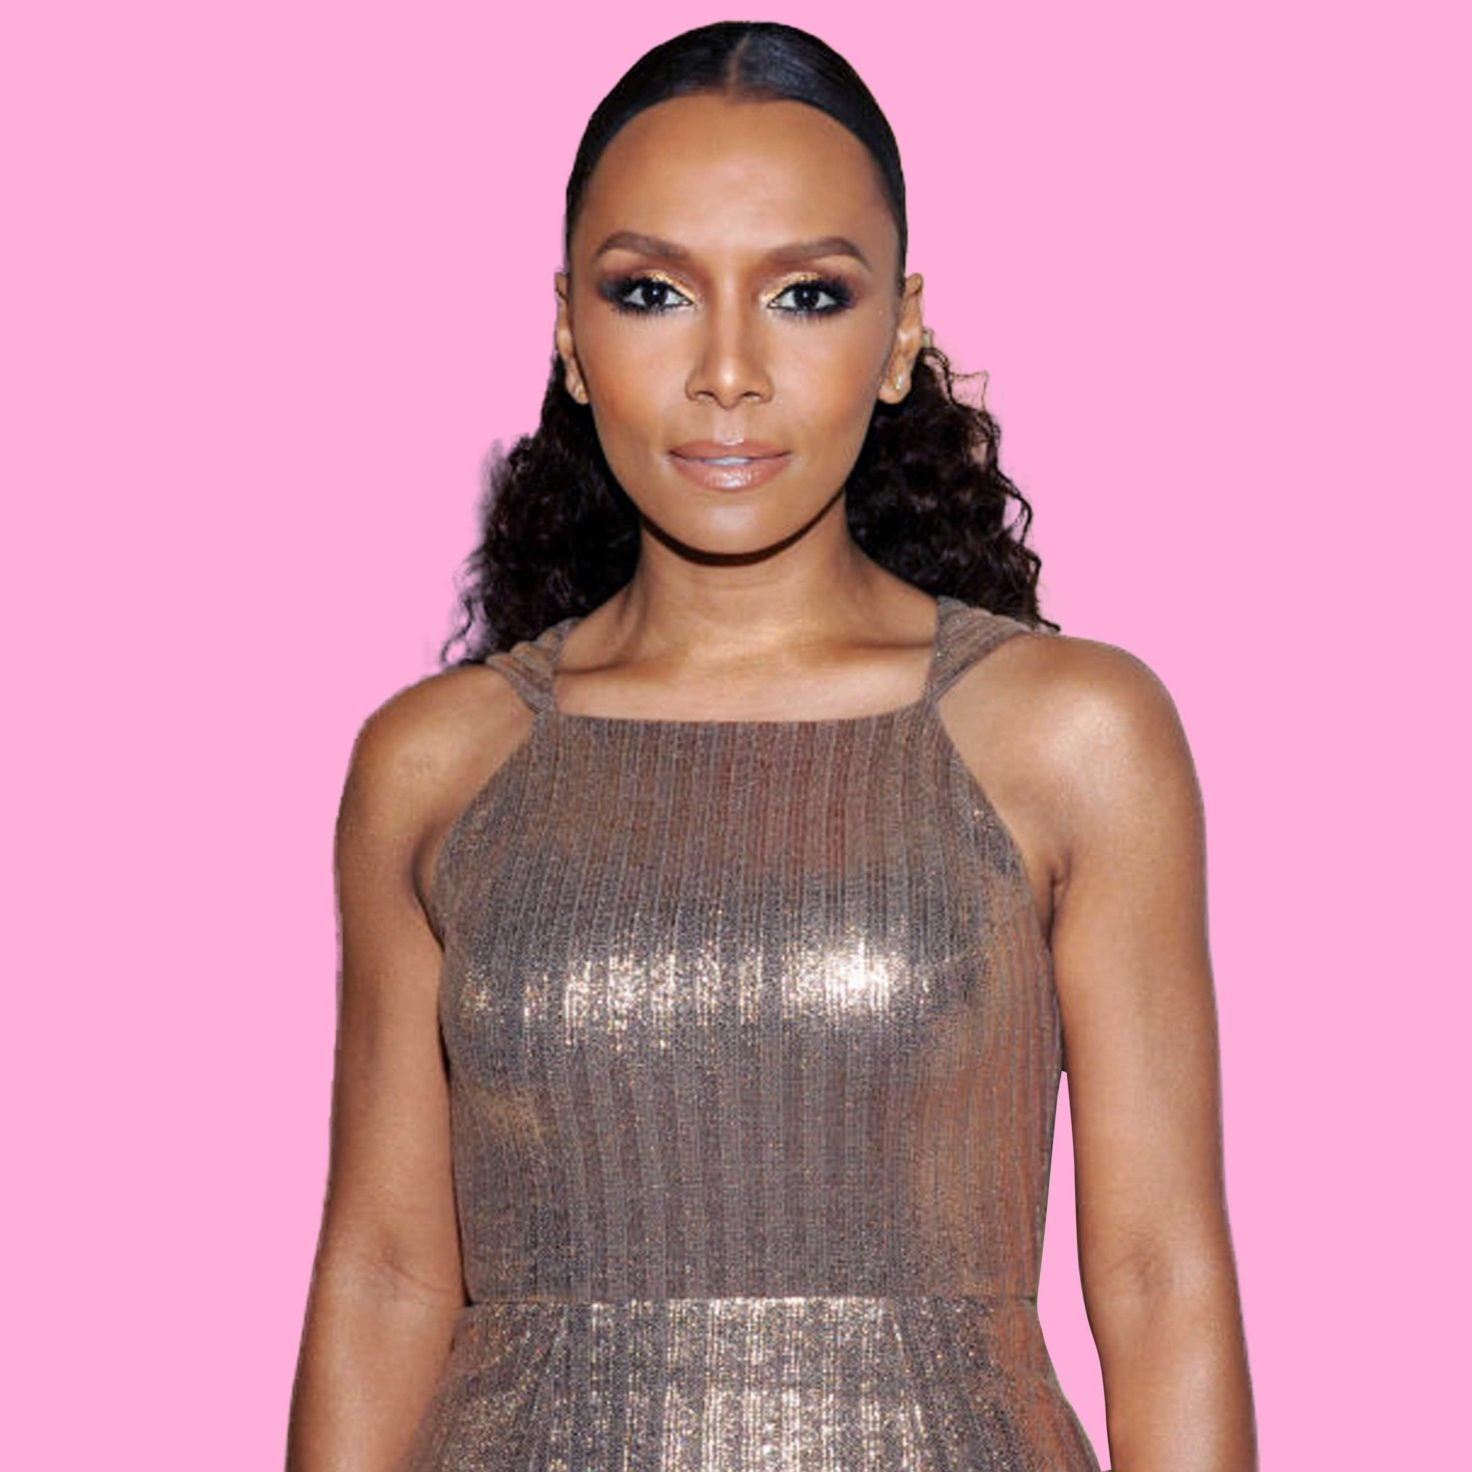 Janet Mock Says 'Respectability Politics Won't Save Us' After 'Pose' Snubbed By NAACP Image Awards